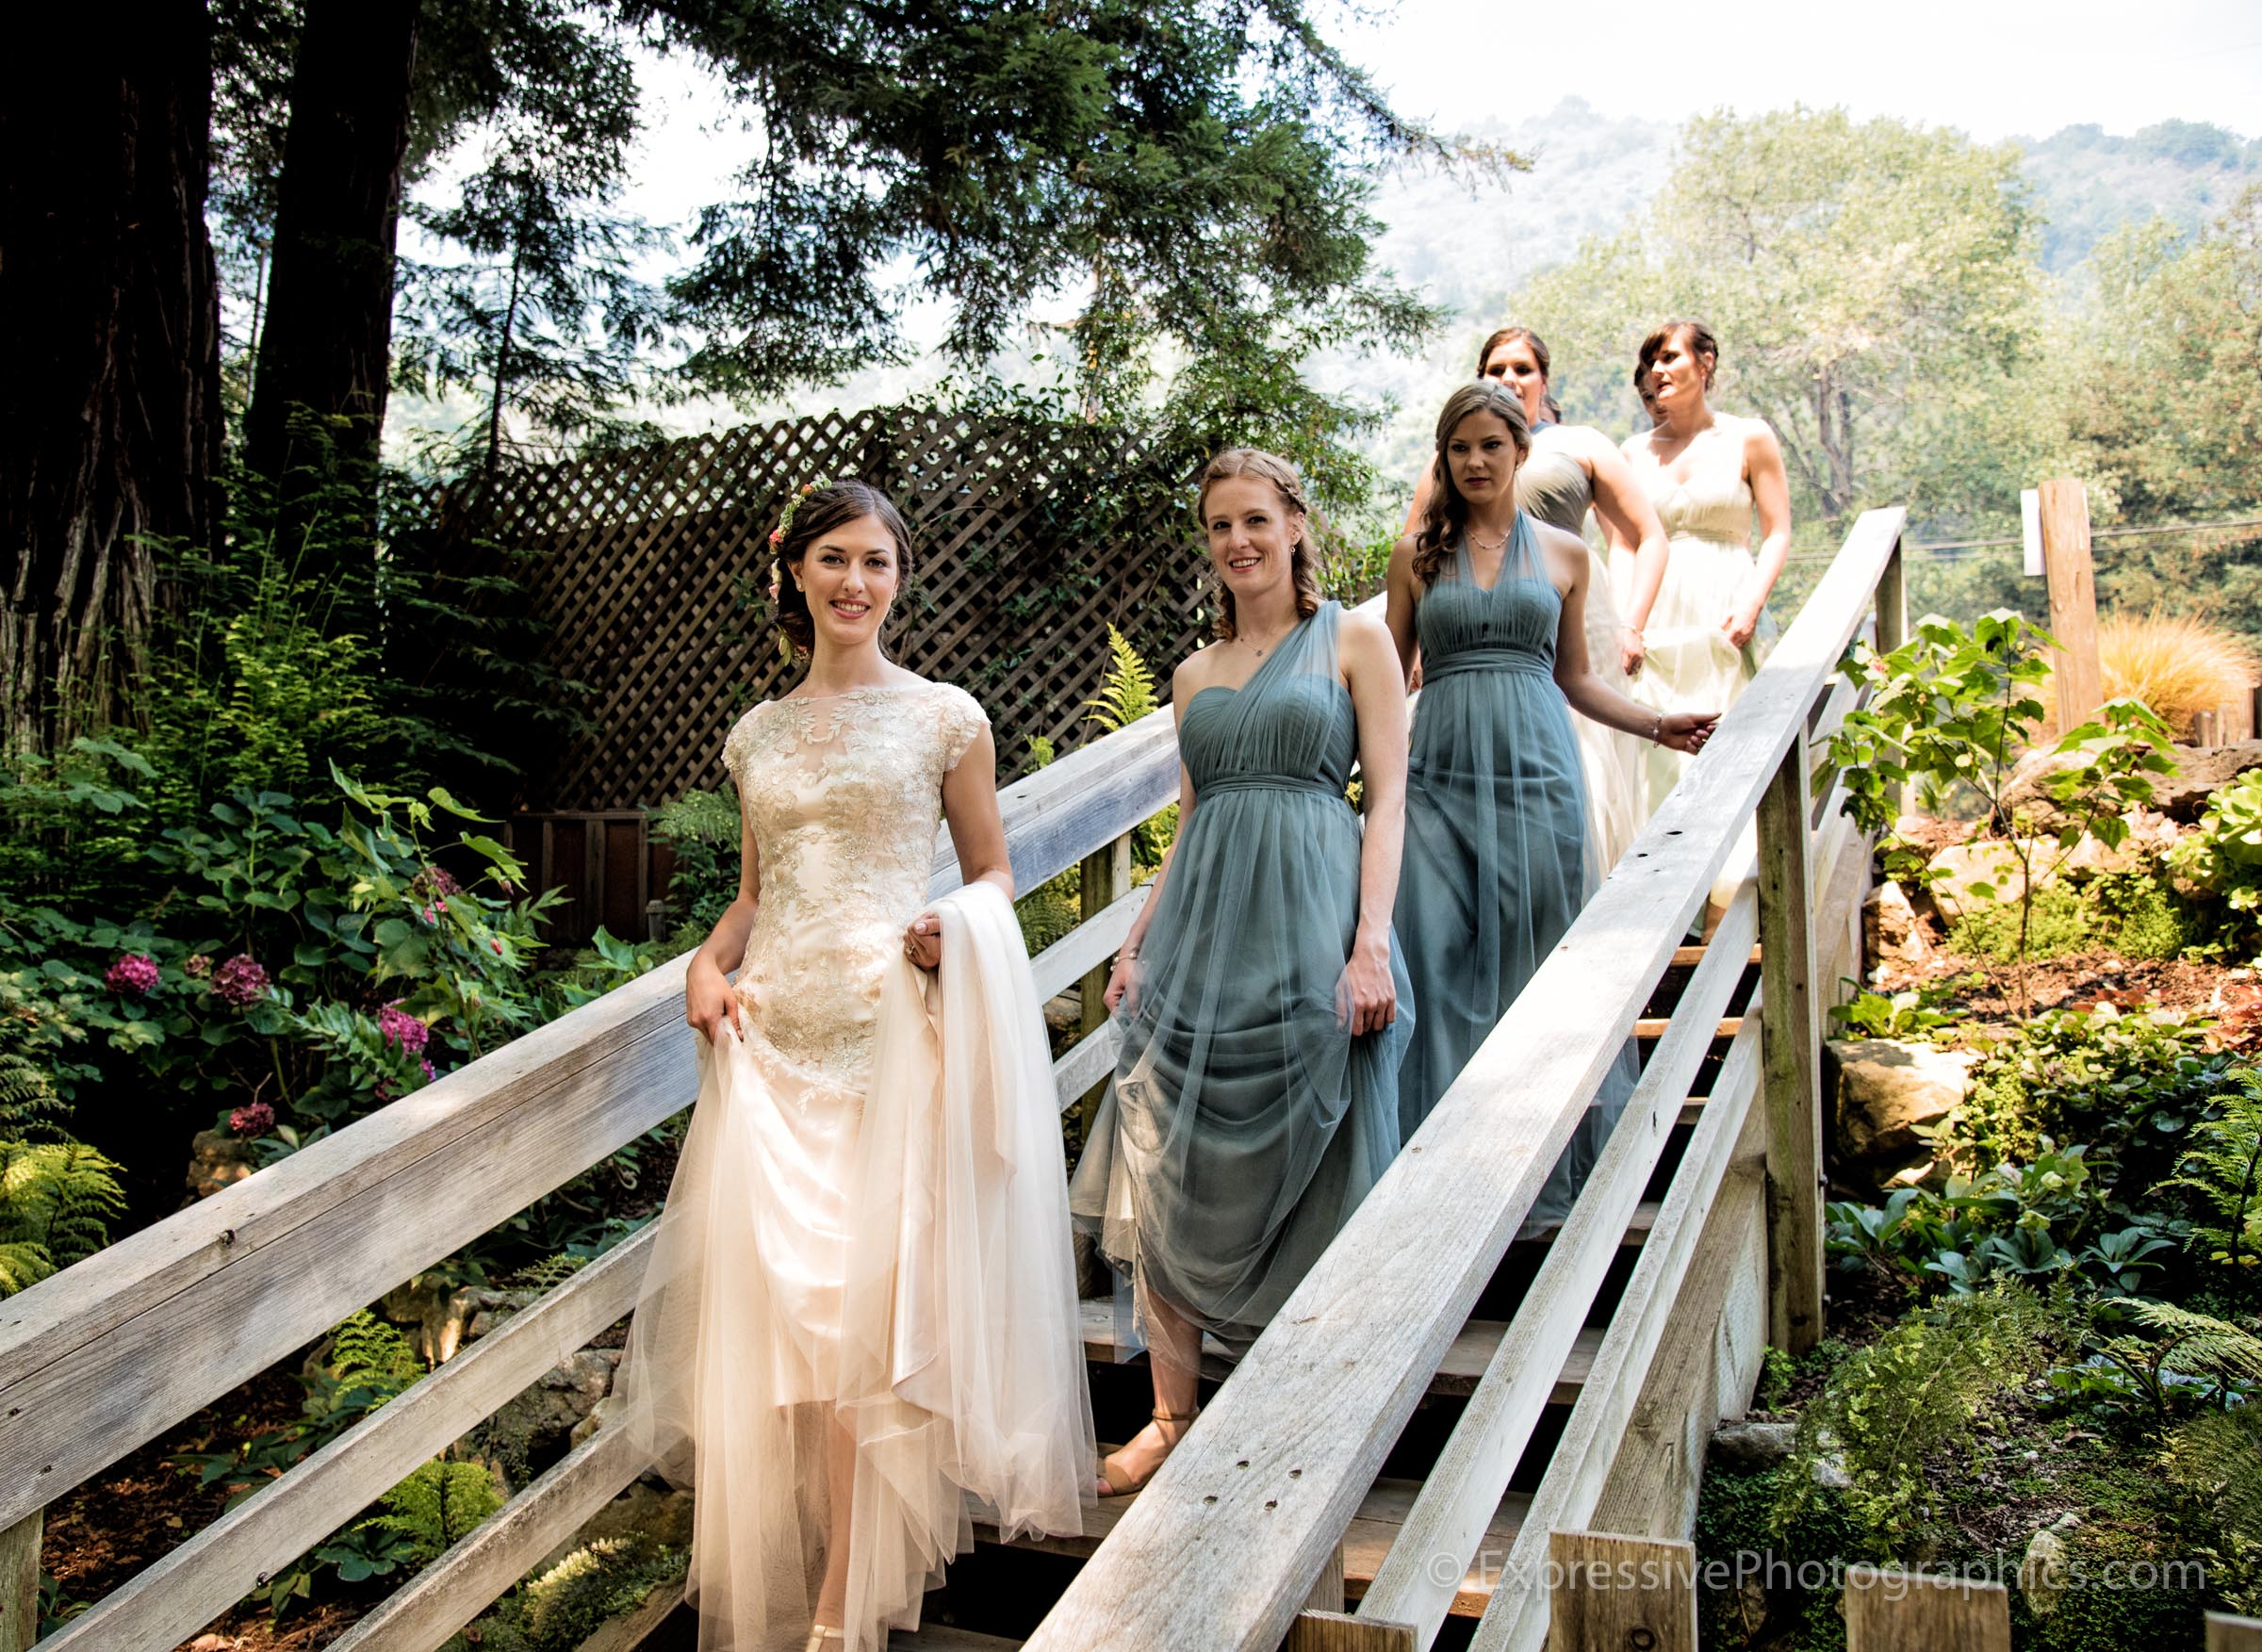 Expressive-Photographics-bridal-and-bridesmaids-big-sur-20160723_0153_R.jpg